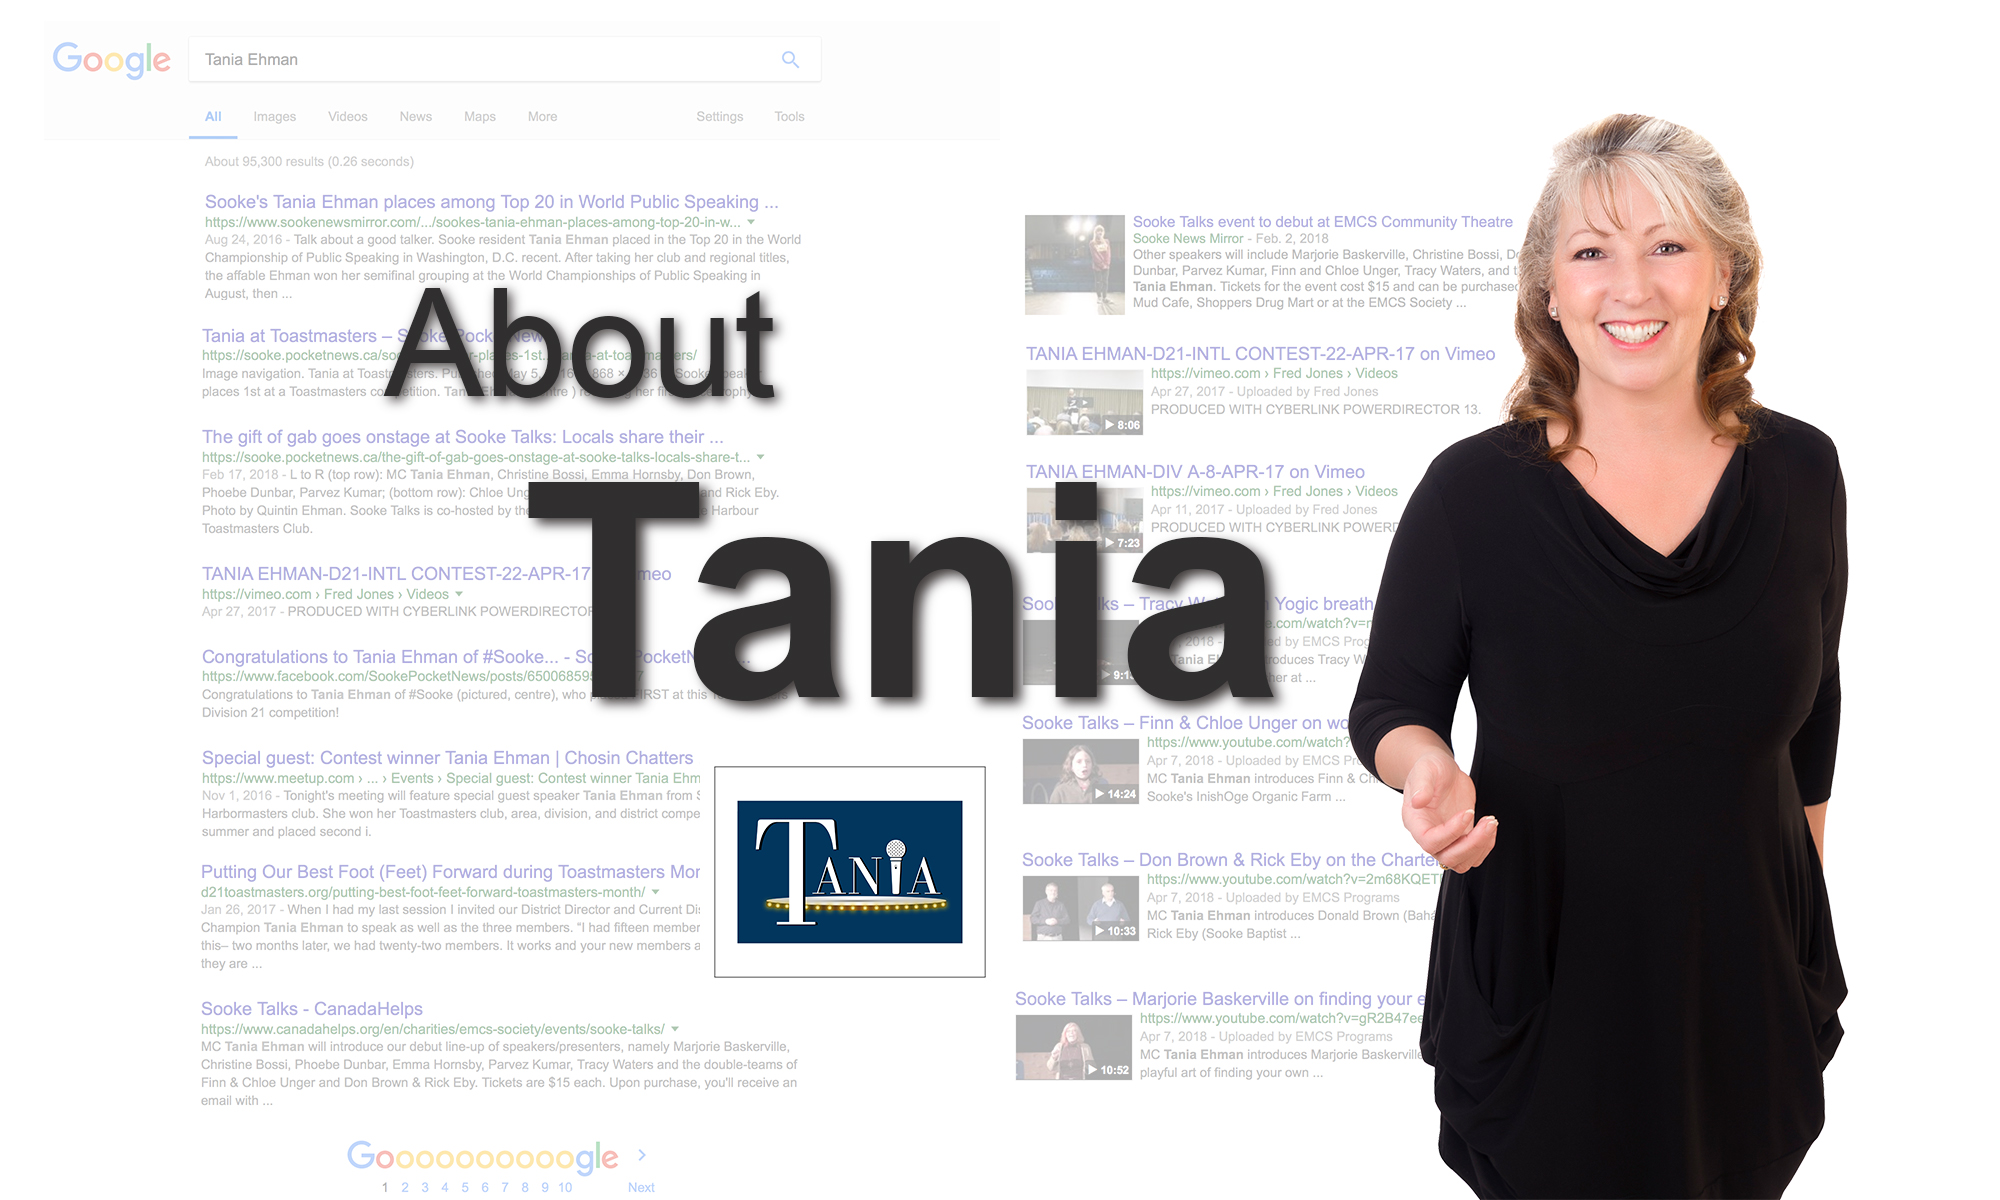 About Tania Ehman